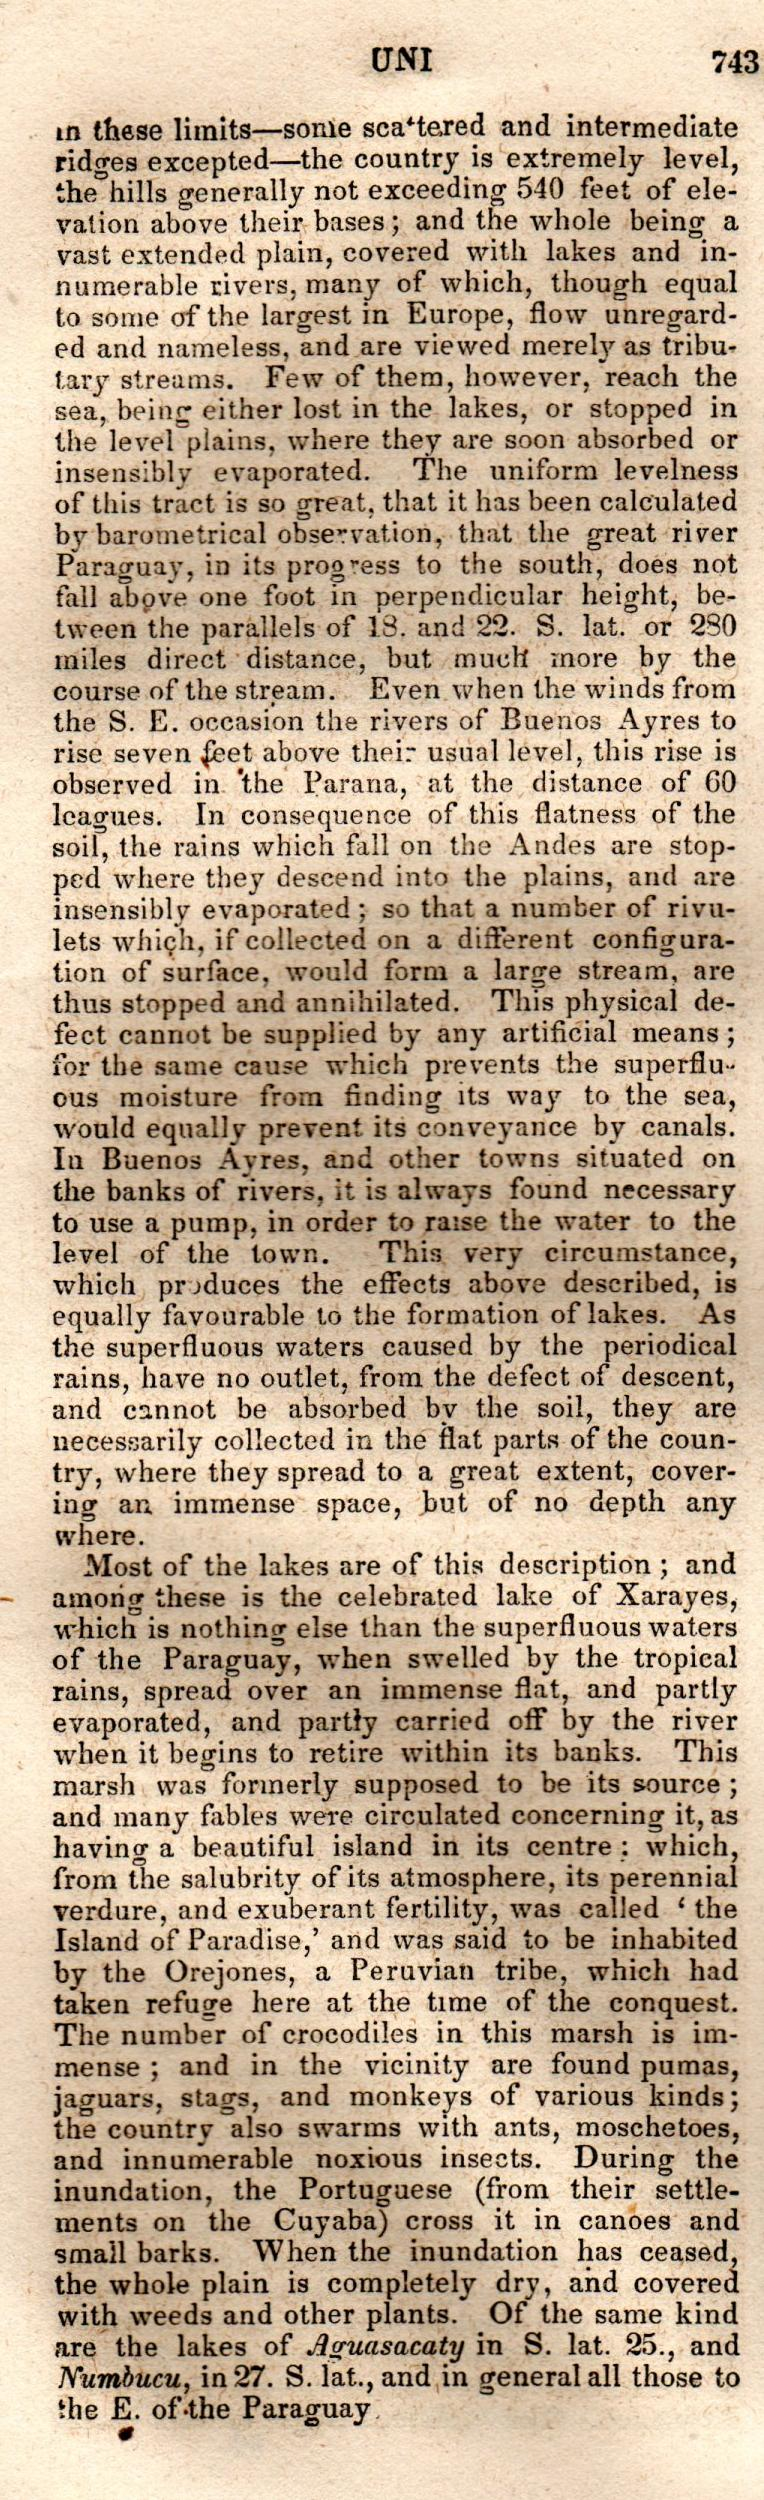 Brookes' Universal Gazetteer (1850), Page  743  Left Column